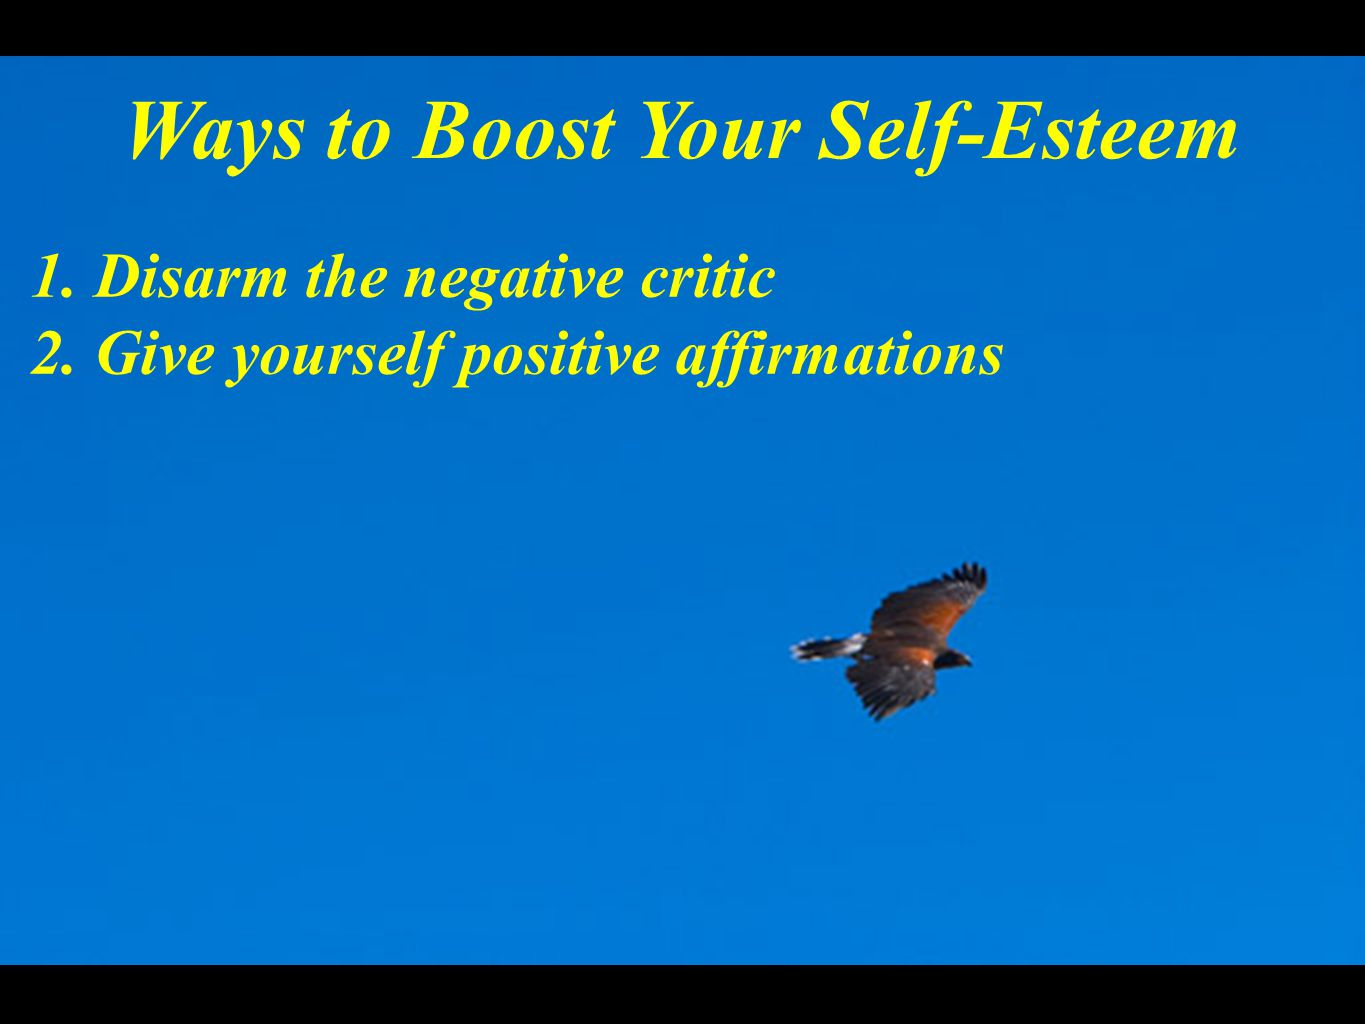 Ways to Boost Your Self-Esteem 1. Disarm the negative critic 2. Give yourself positive affirmations